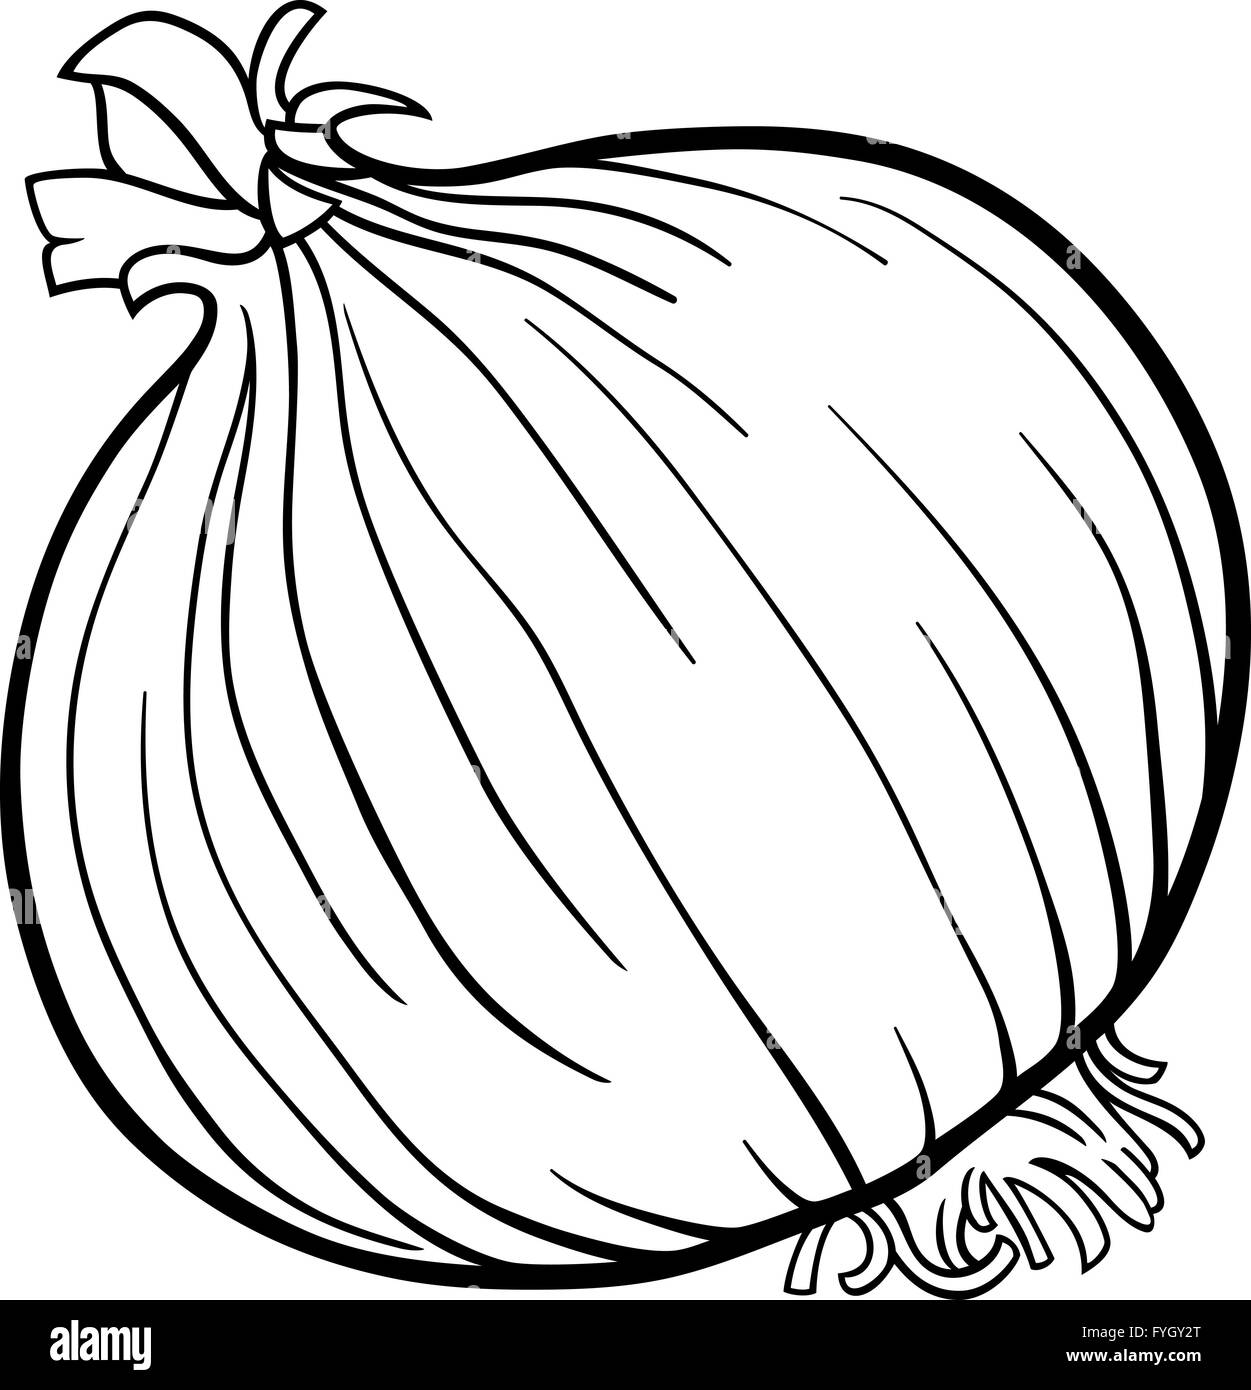 Onion Vegetable Cartoon For Coloring Book Stock Photo 103020032